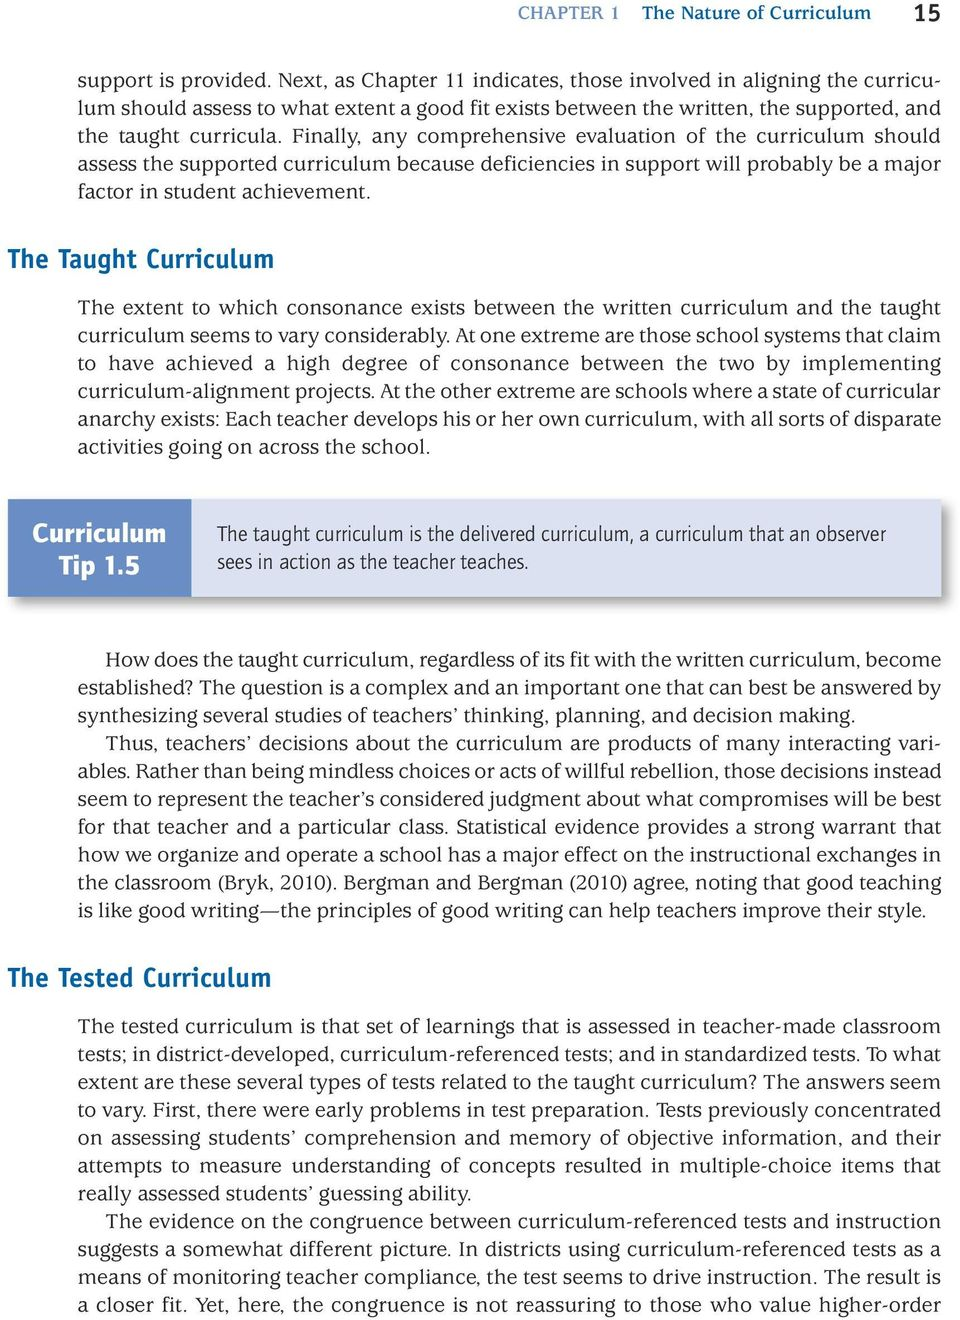 CHAPTER 1 The Nature of Curriculum - PDF